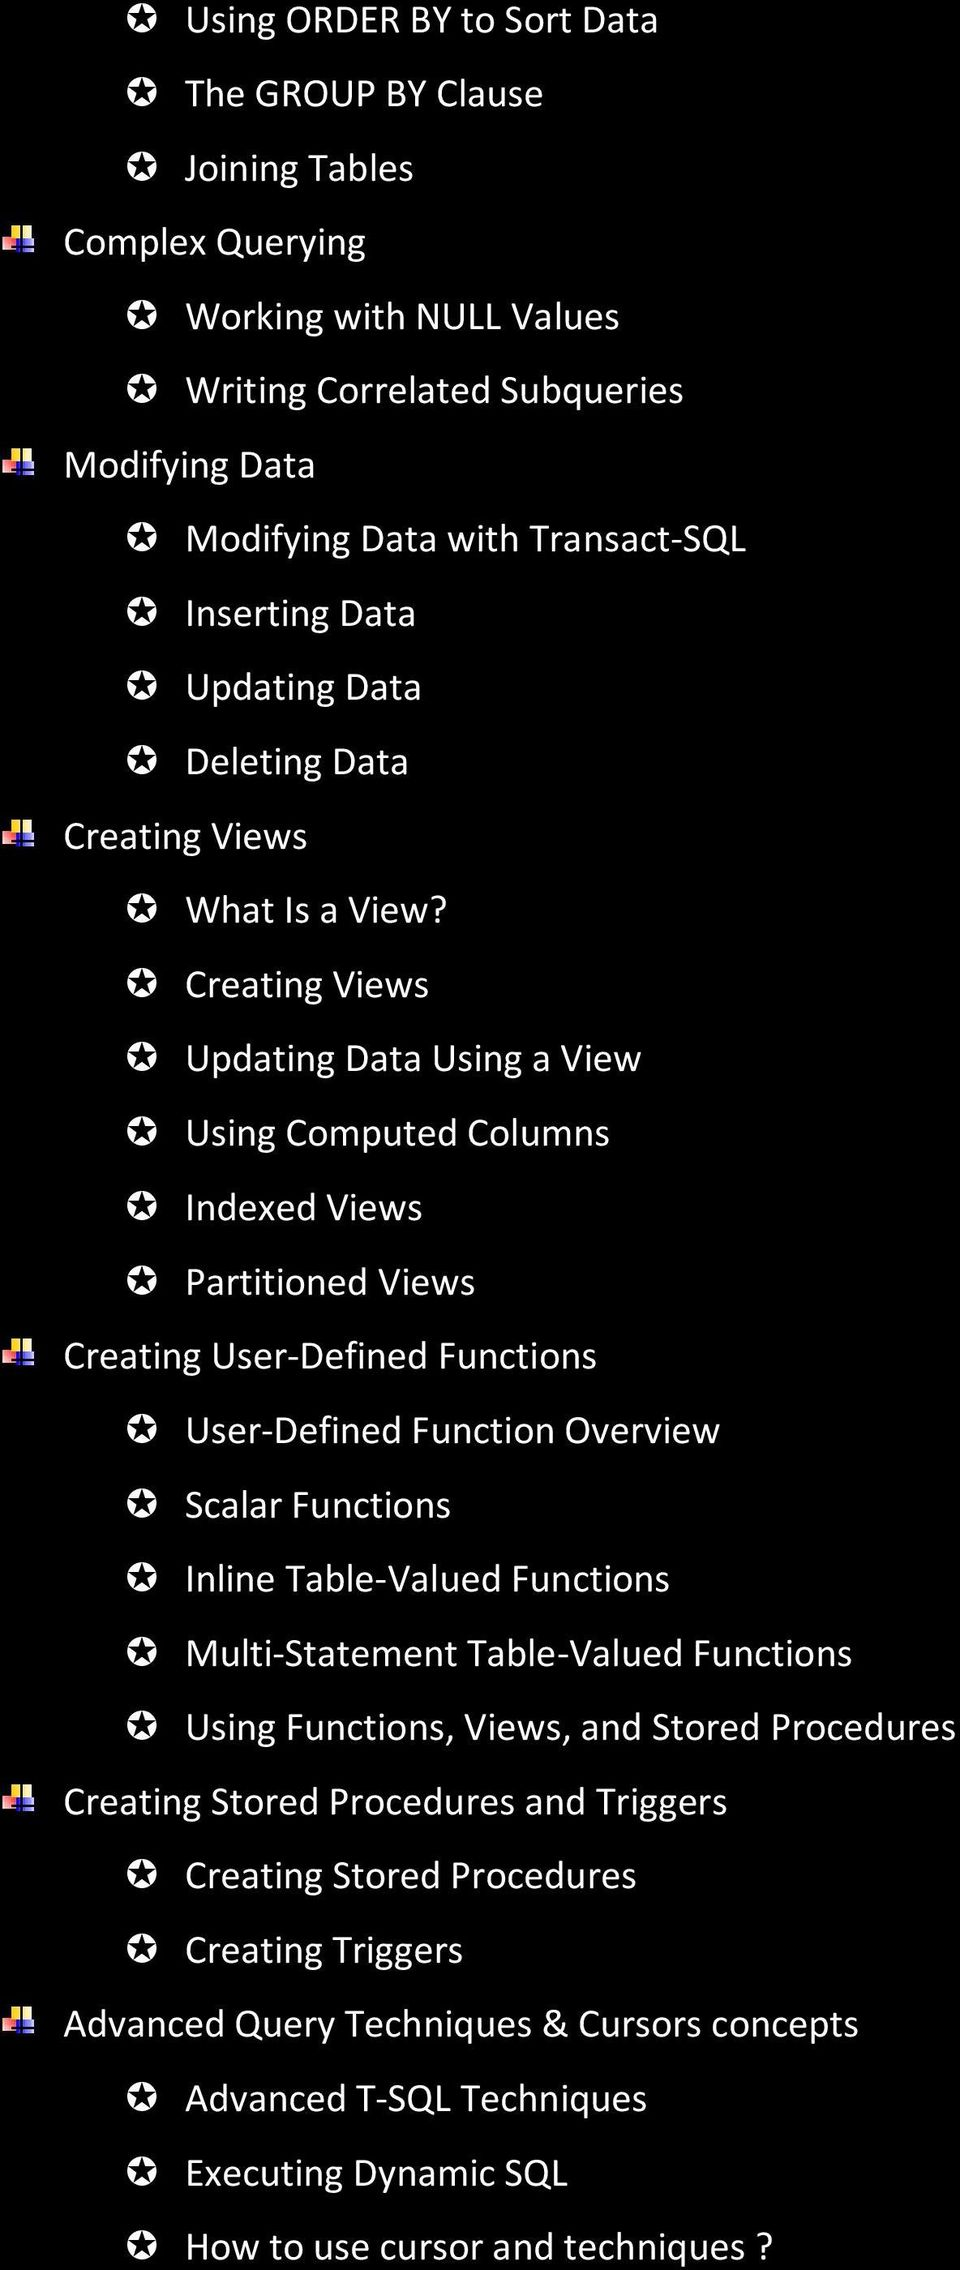 Creating Views Updating Data Using a View Using Computed Columns Indexed Views Partitioned Views Creating User-Defined Functions User-Defined Function Overview Scalar Functions Inline